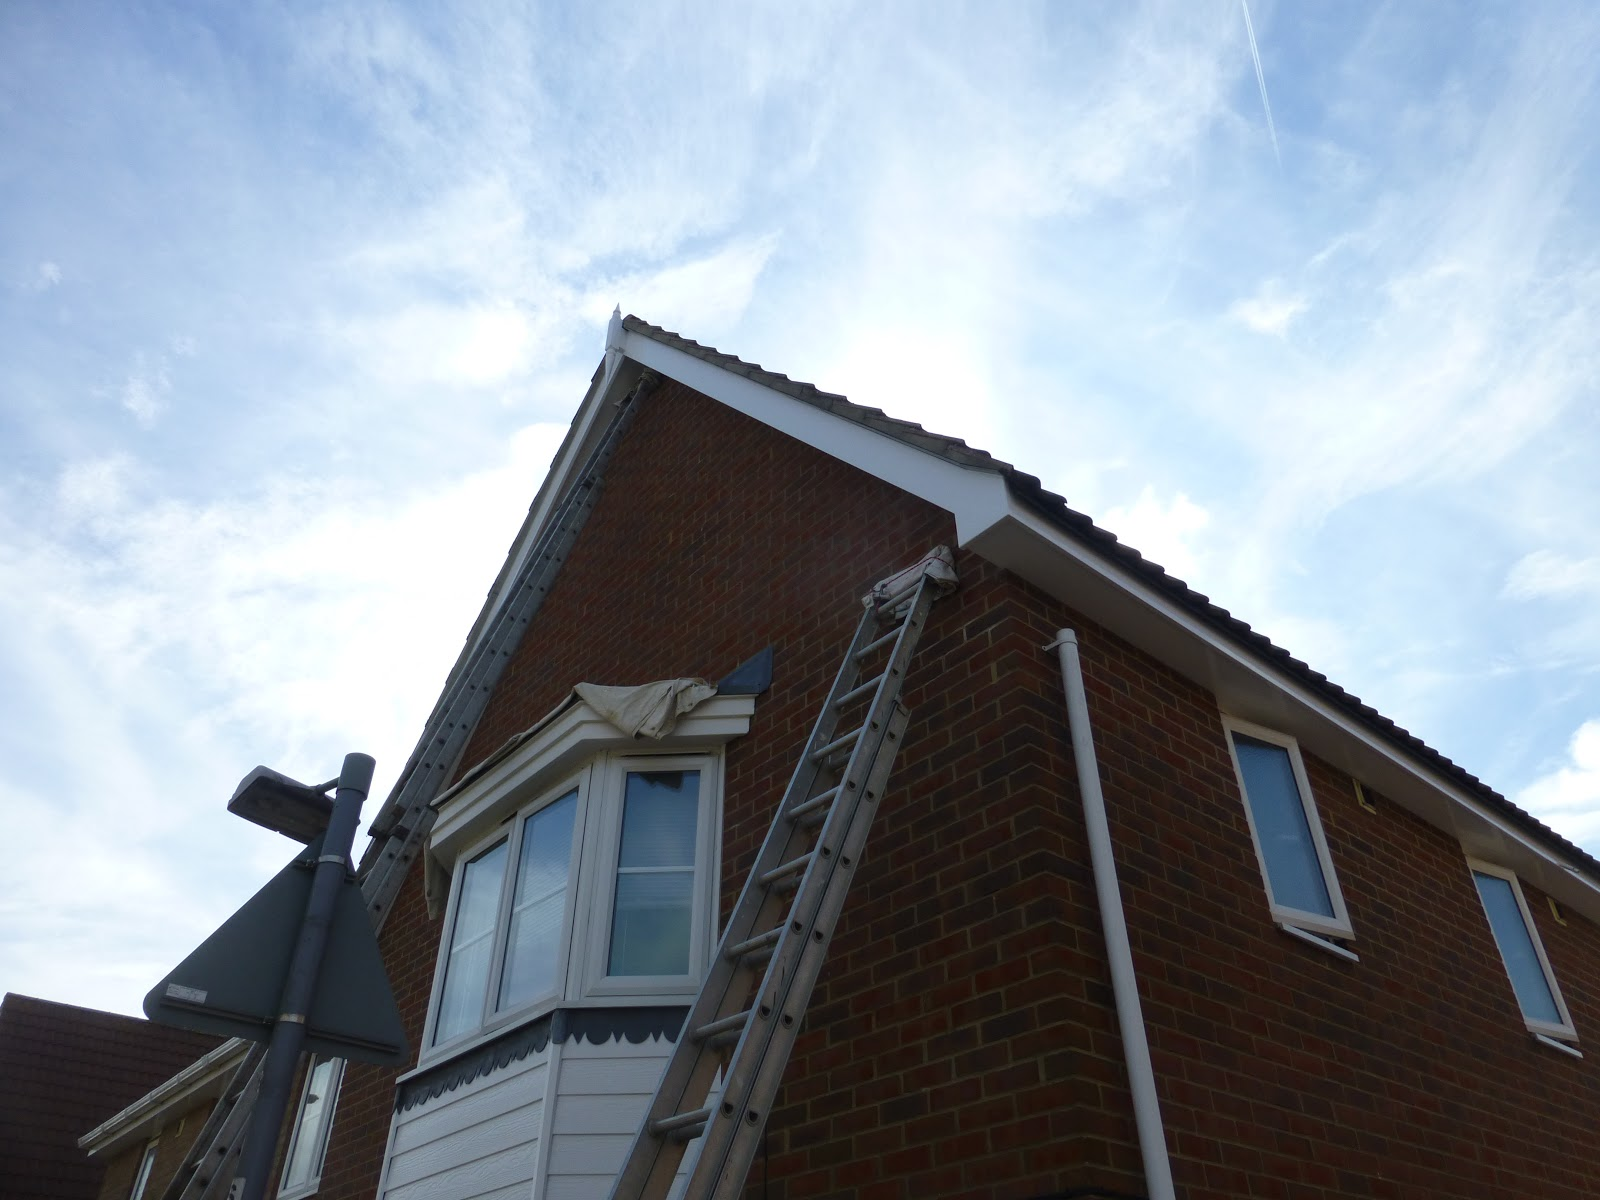 House painted in August 2016  Fascias & Soffit boards